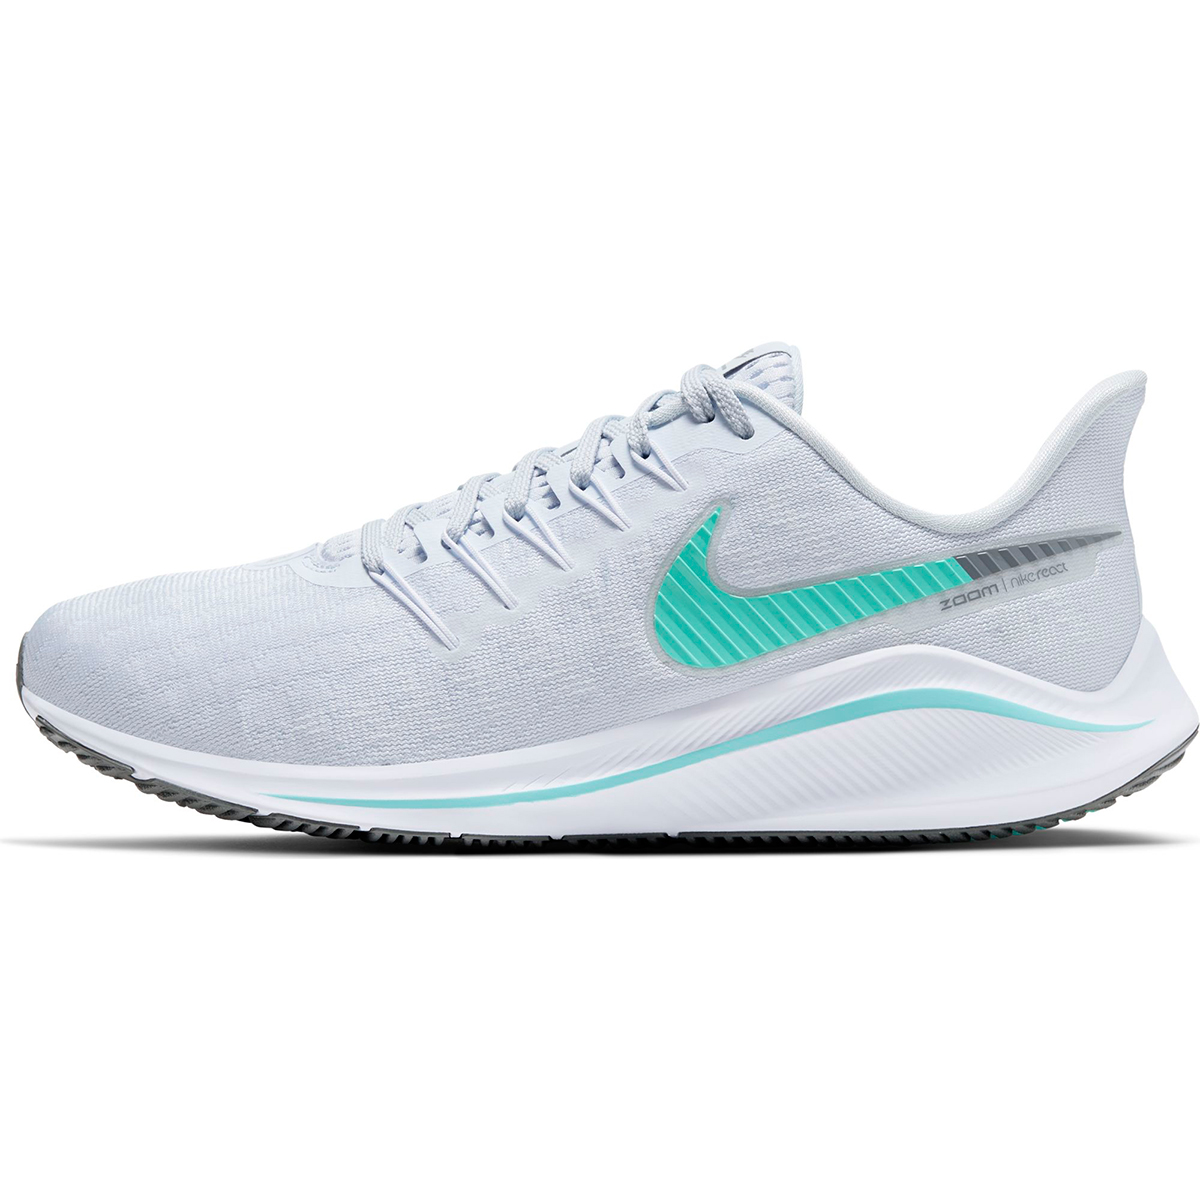 Women's Nike Air Zoom Vomero 14 Running Shoe - Color: Football Grey/White/Cool (Regular Width) - Size: 5, Football Grey/White/Cool, large, image 2